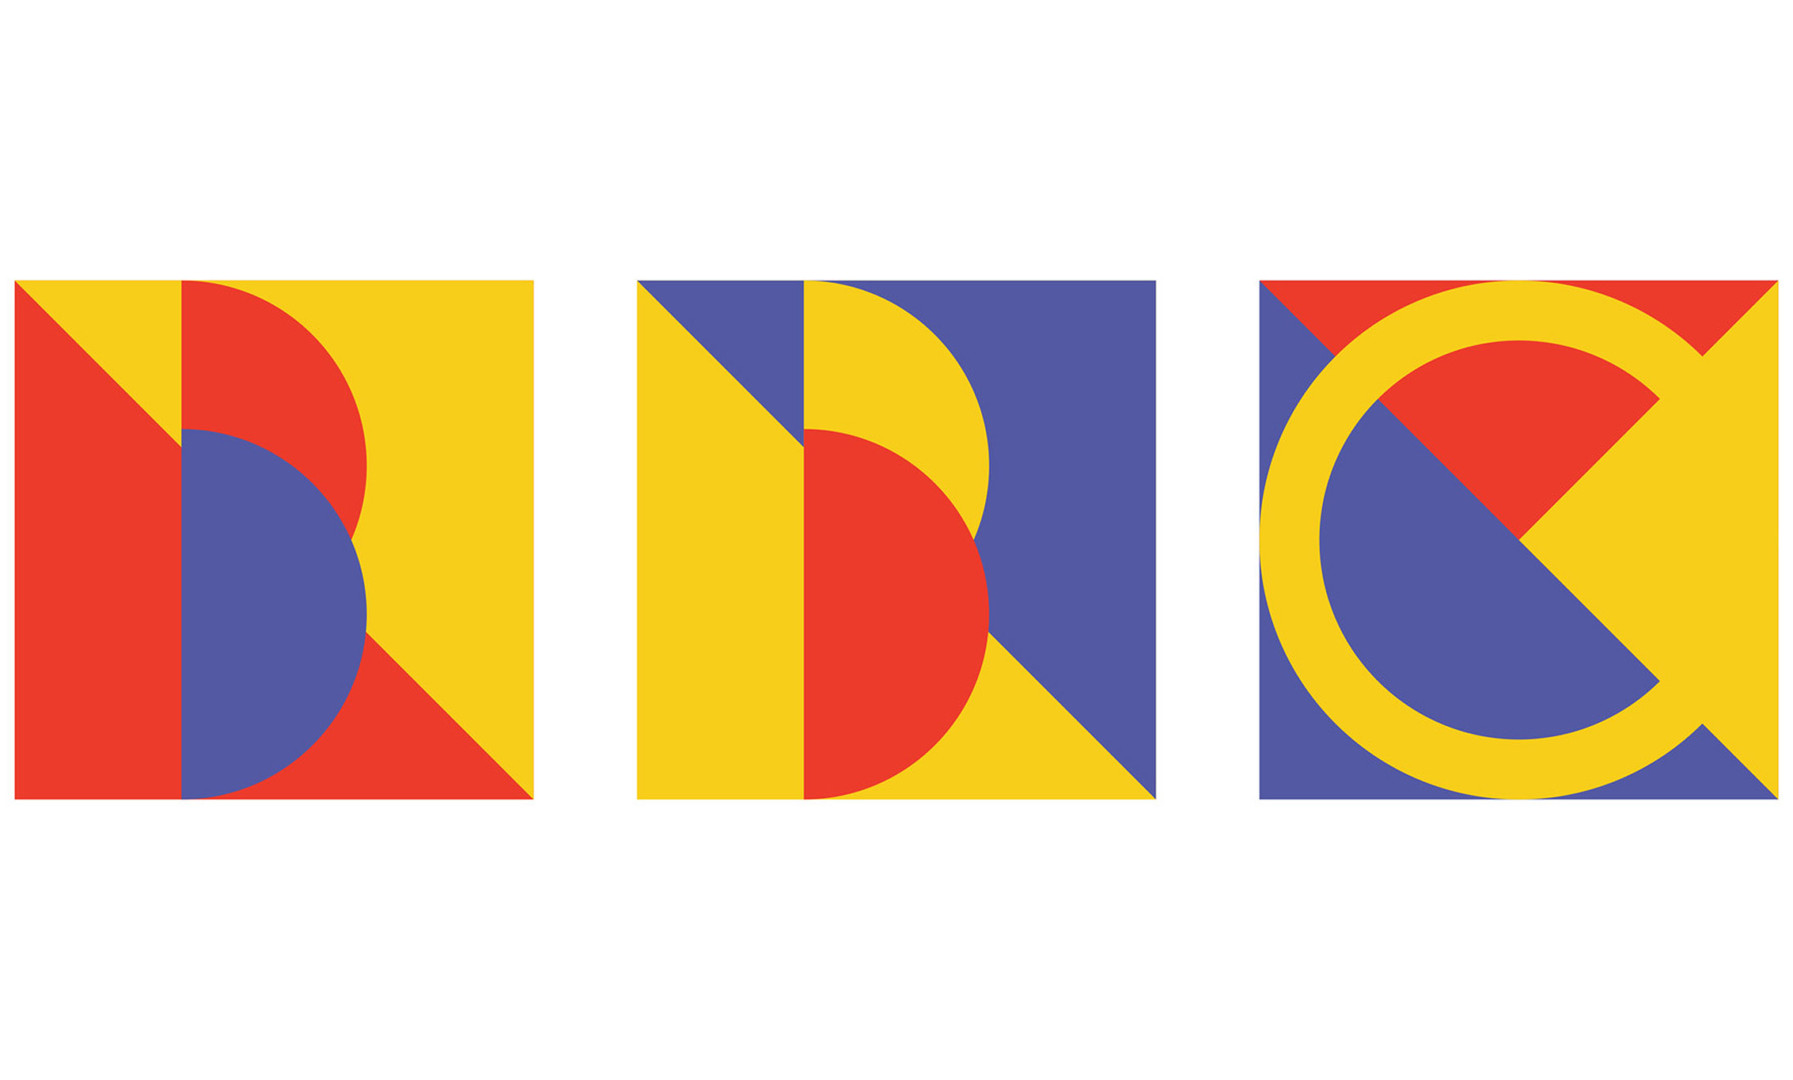 bauhaus-logo-redesigns-graphics_dezeen_2